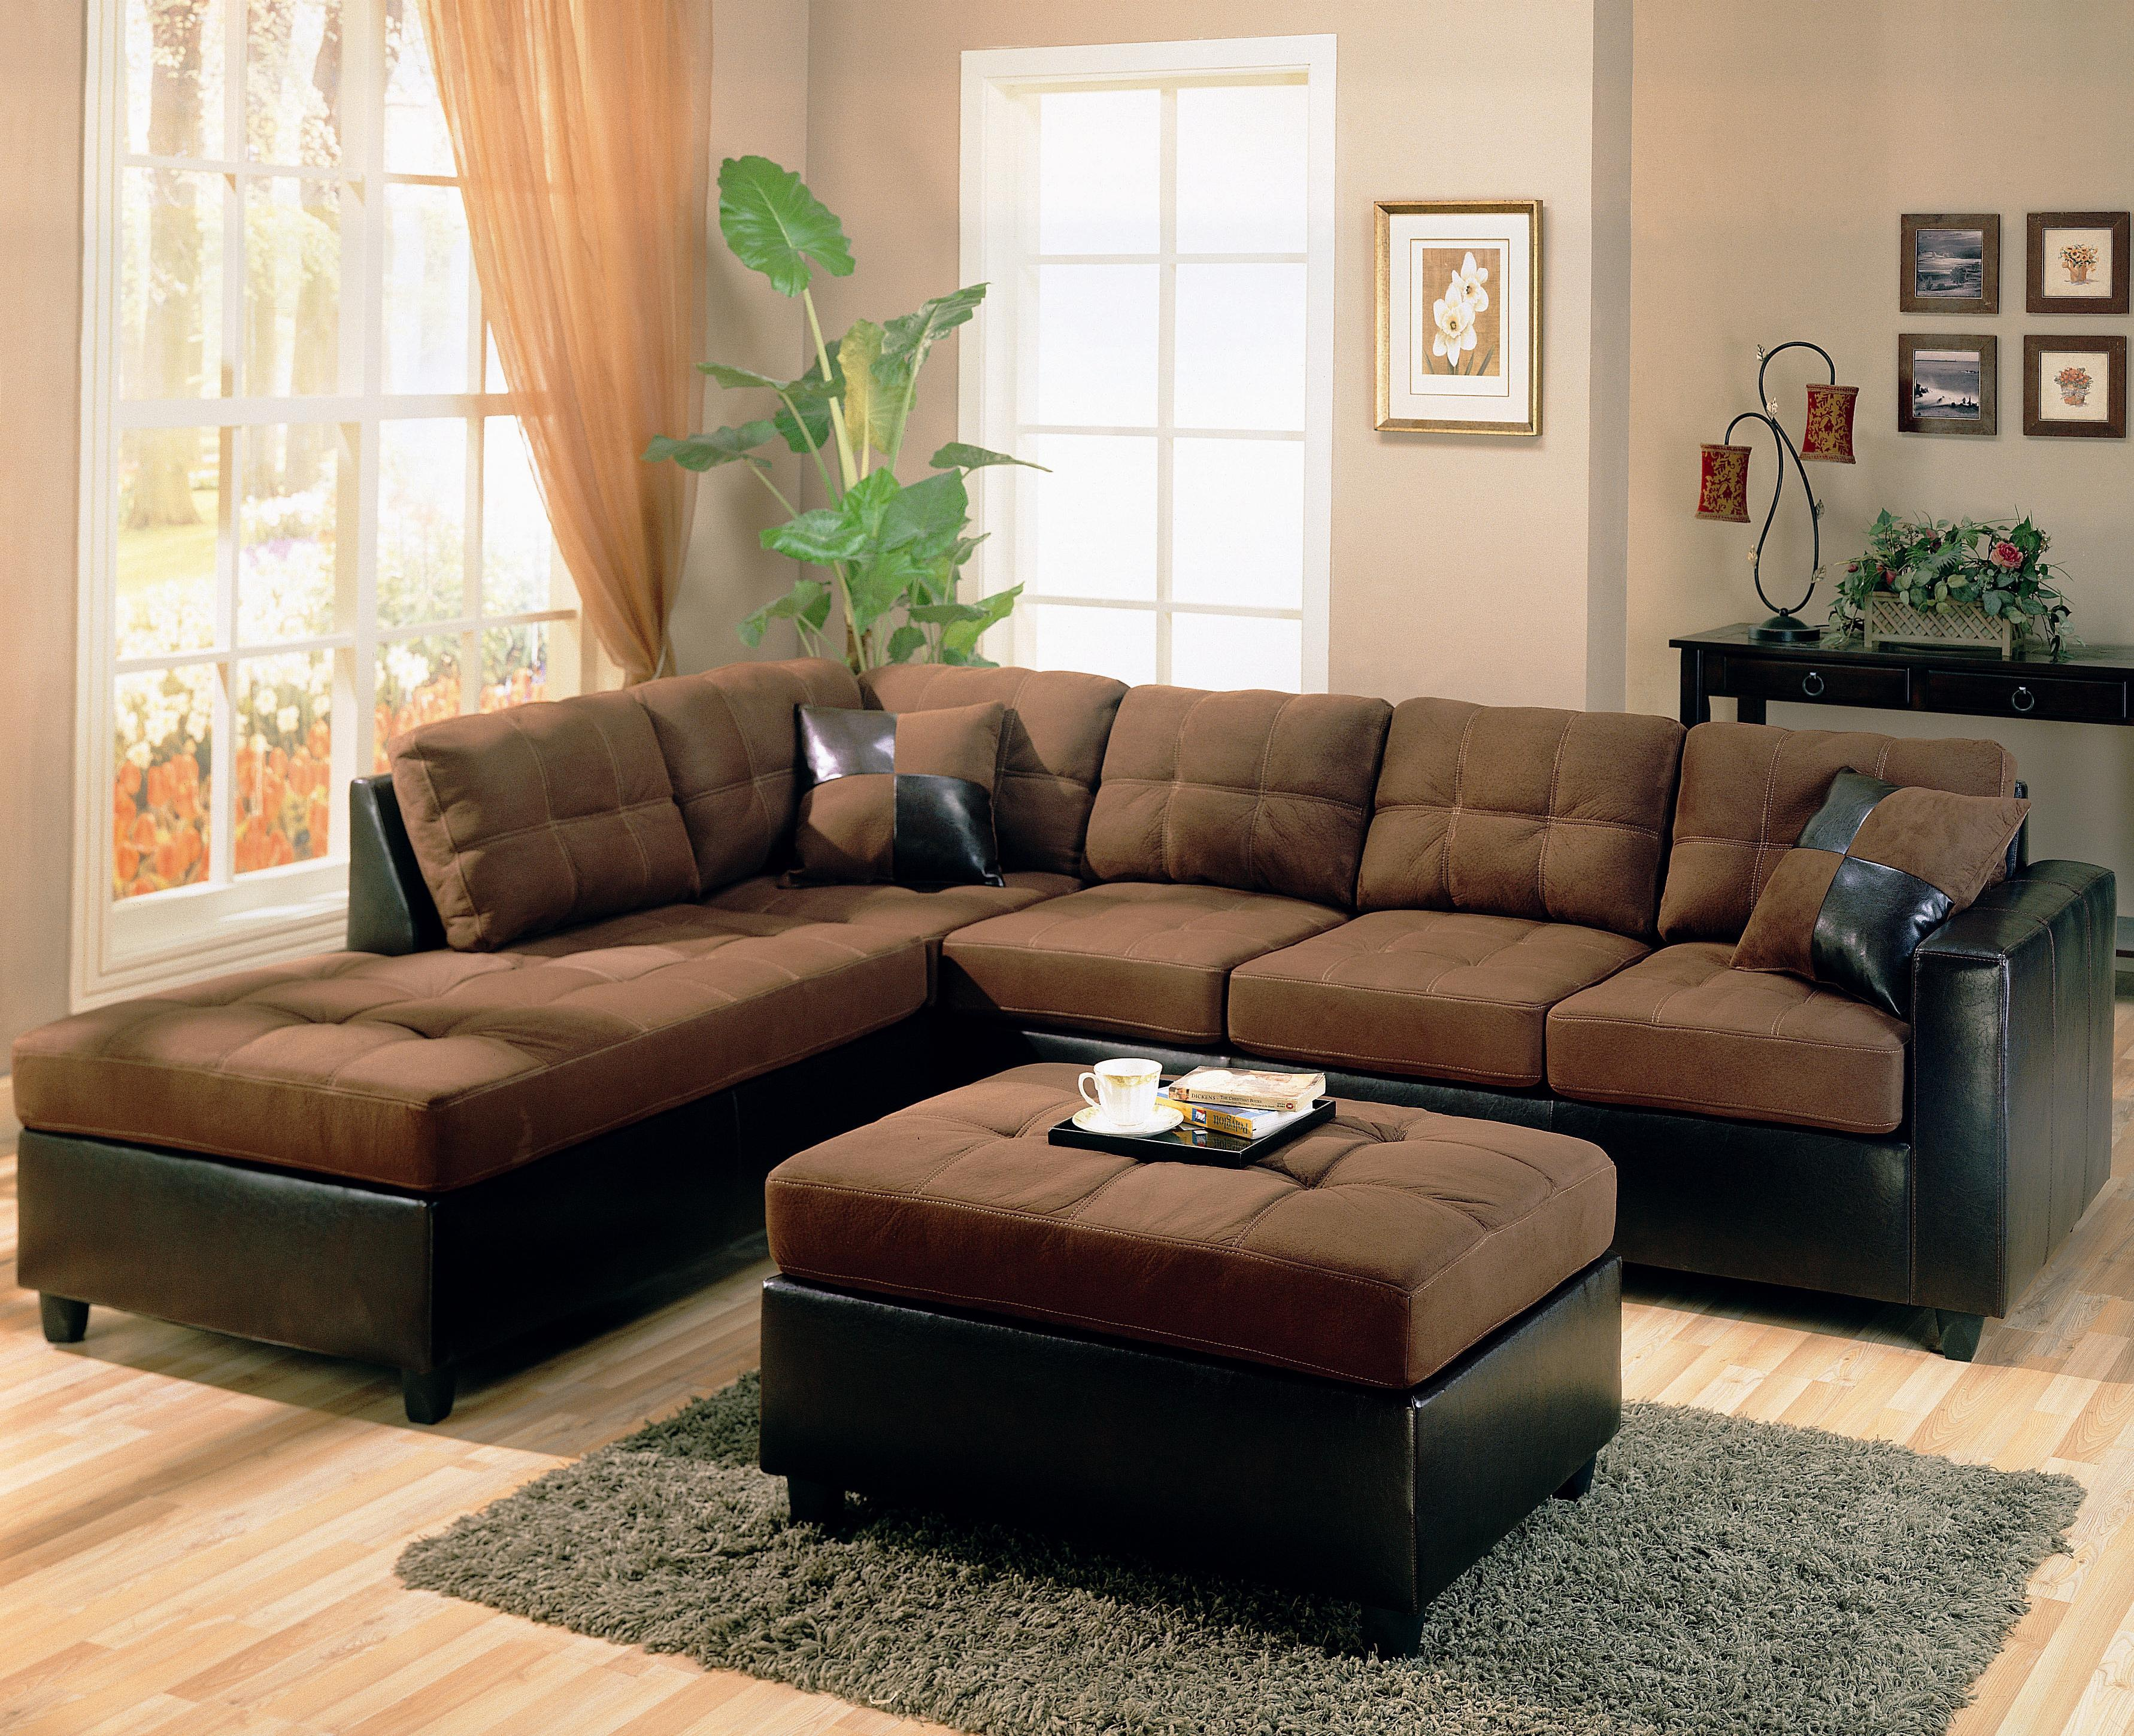 Brown Living Room Furniture Ideas with Tufted Sectional Sofa and Square Ottoman on Grey Carpet Rug